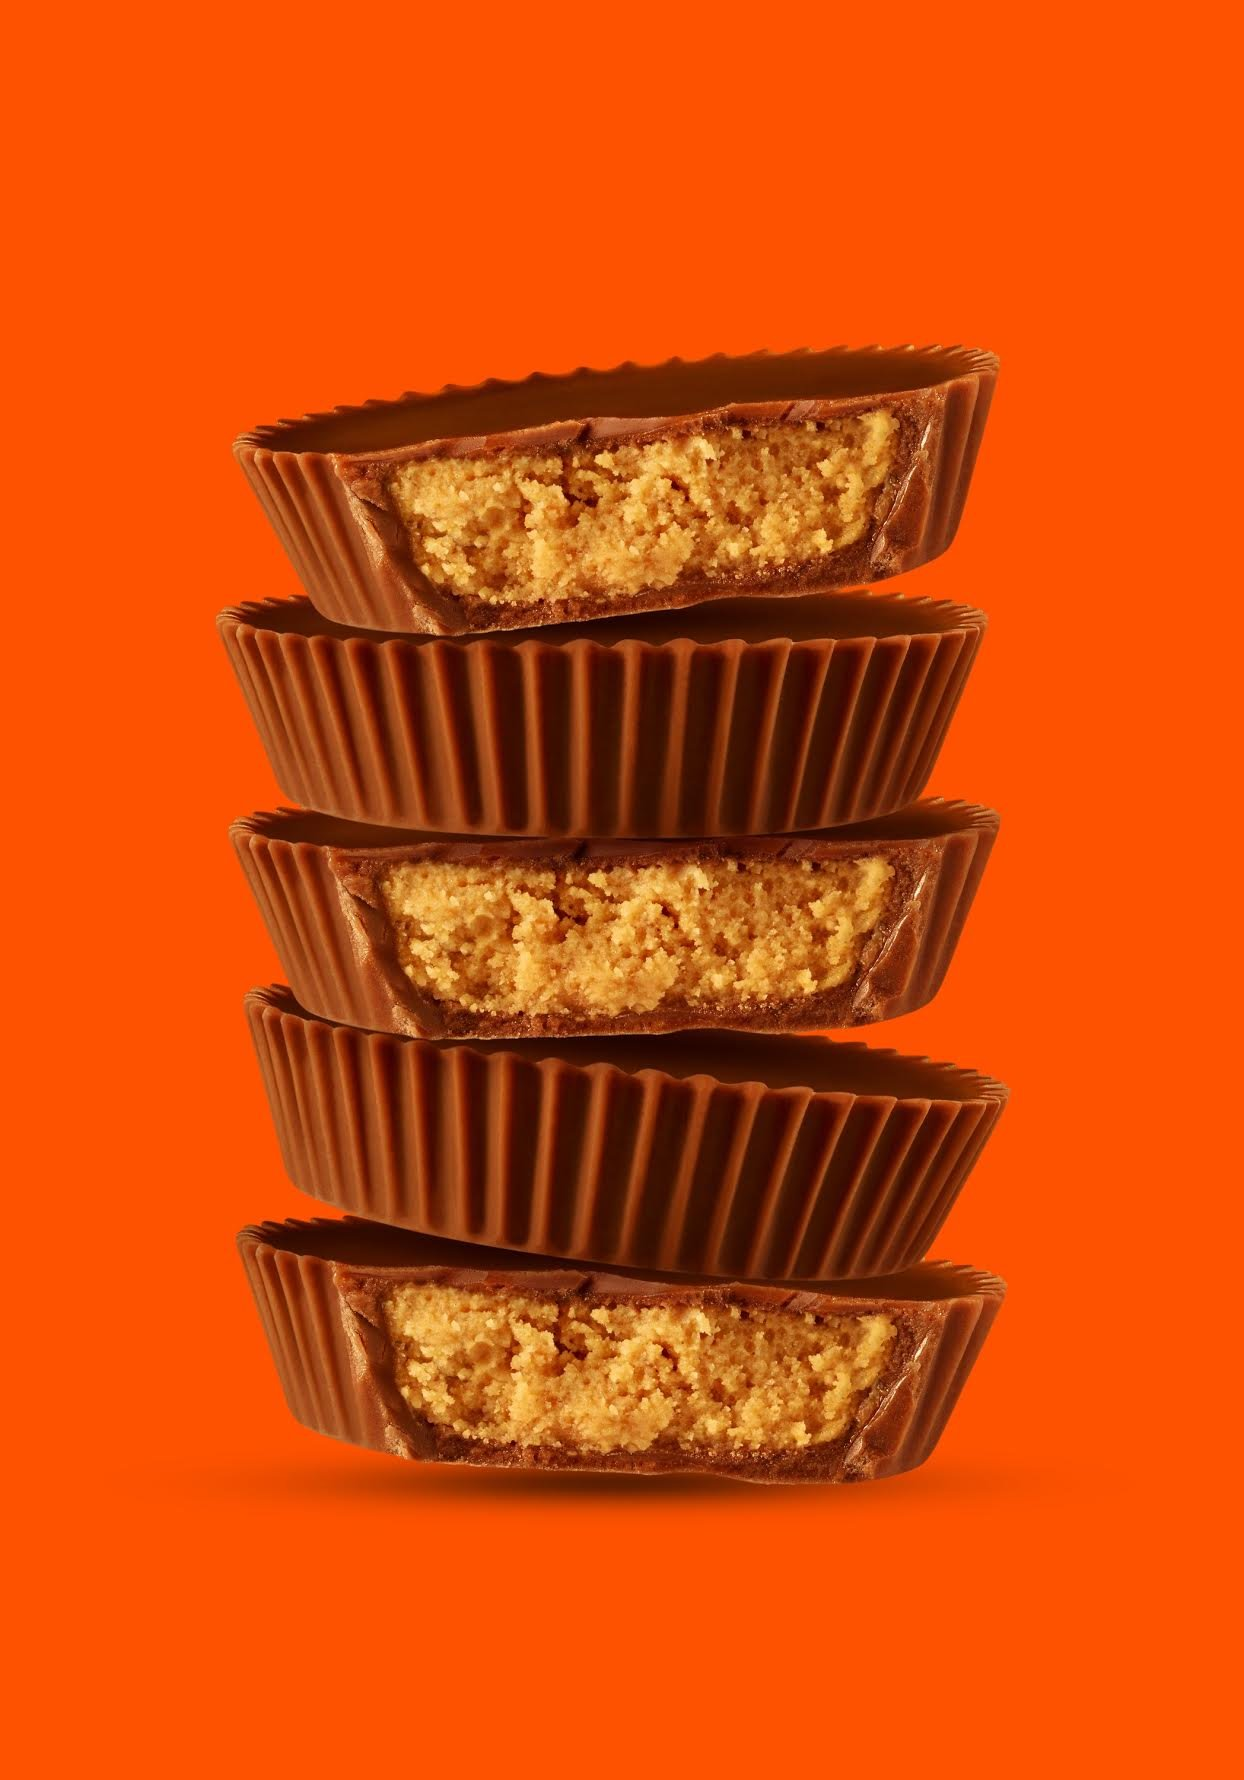 REESE'S Peanut Butter Cups, Chocolate Candy, Snack Size, 19.5 Ounce, Pack of 2 by Reese's